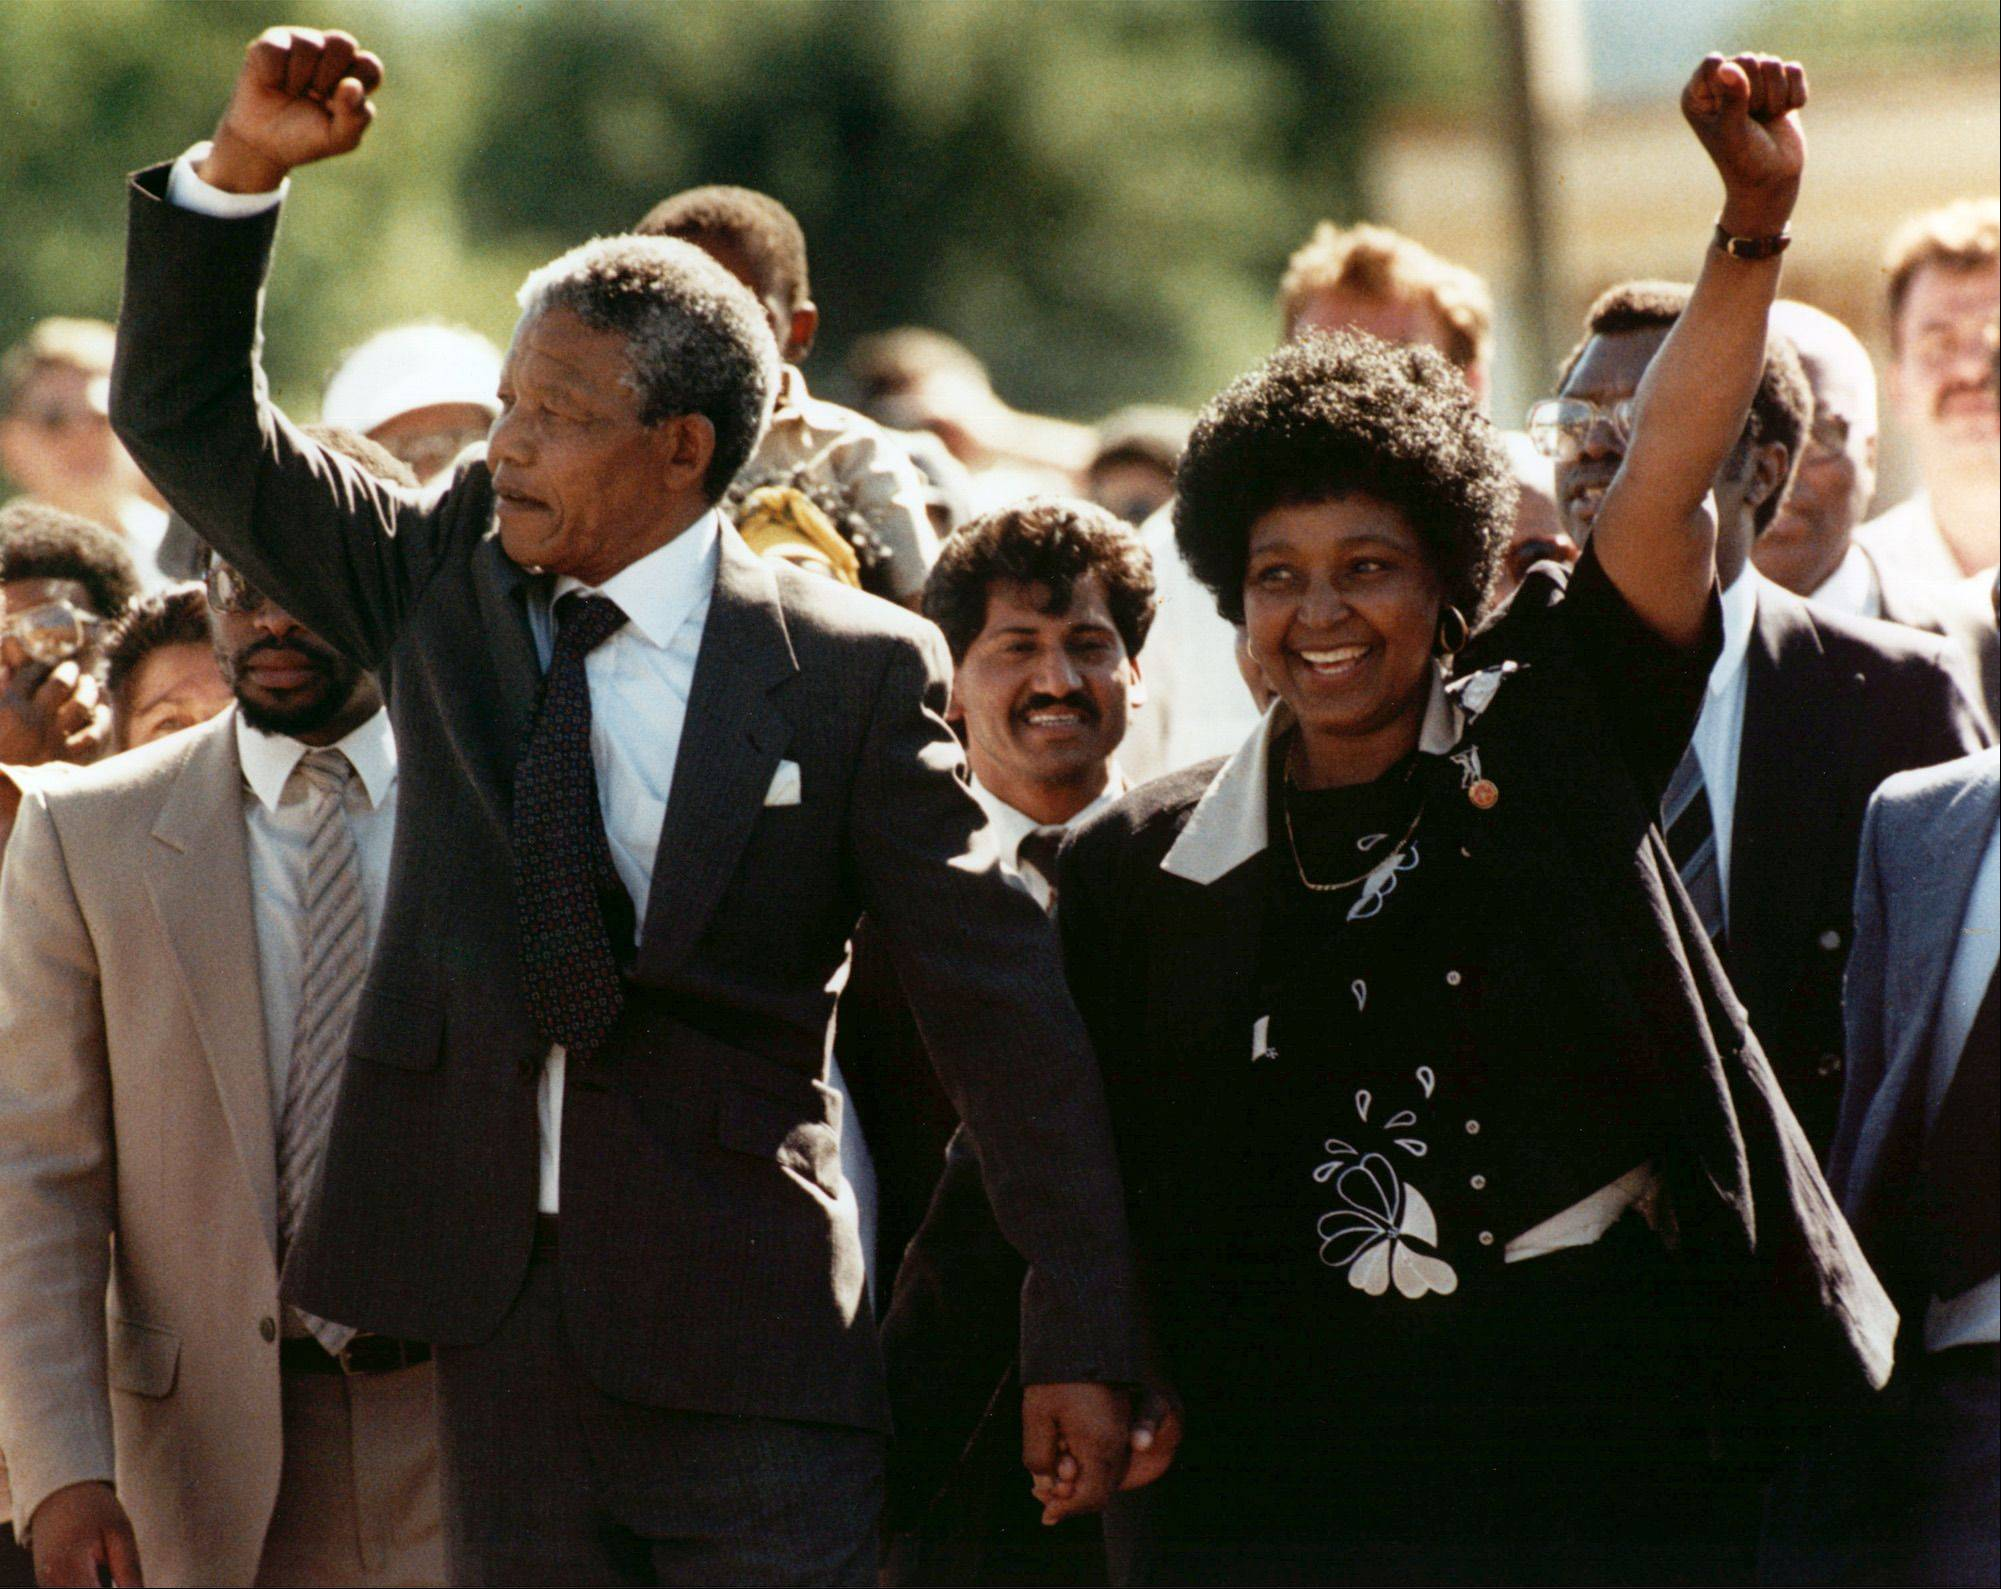 Nelson Mandela and wife Winnie, walking hand in hand, raise clenched fists upon his release from Victor prison, Cape Town, Feb. 11, 1990.